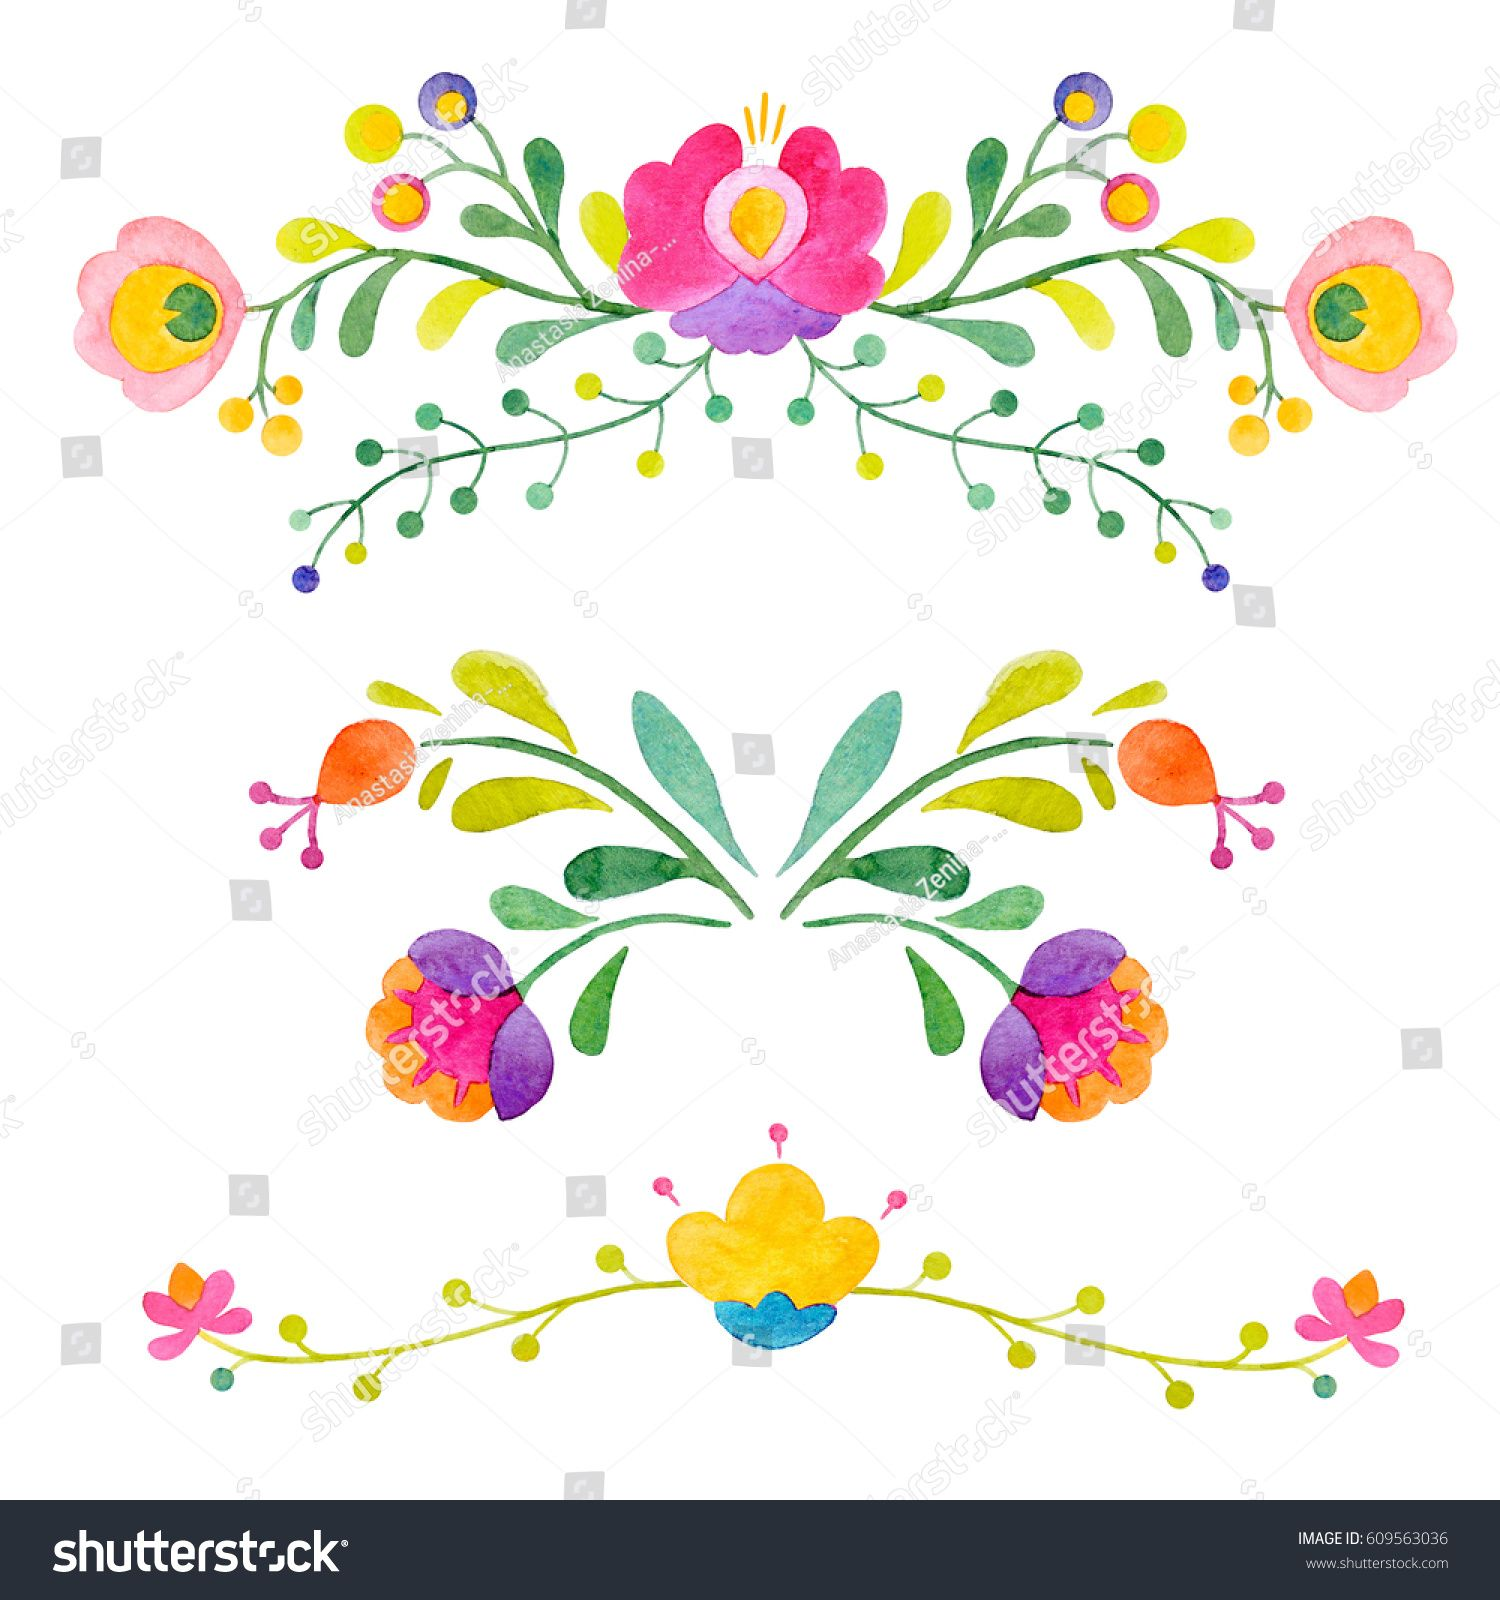 Watercolor abstract cute elements Floral Mexican pattern Doodle